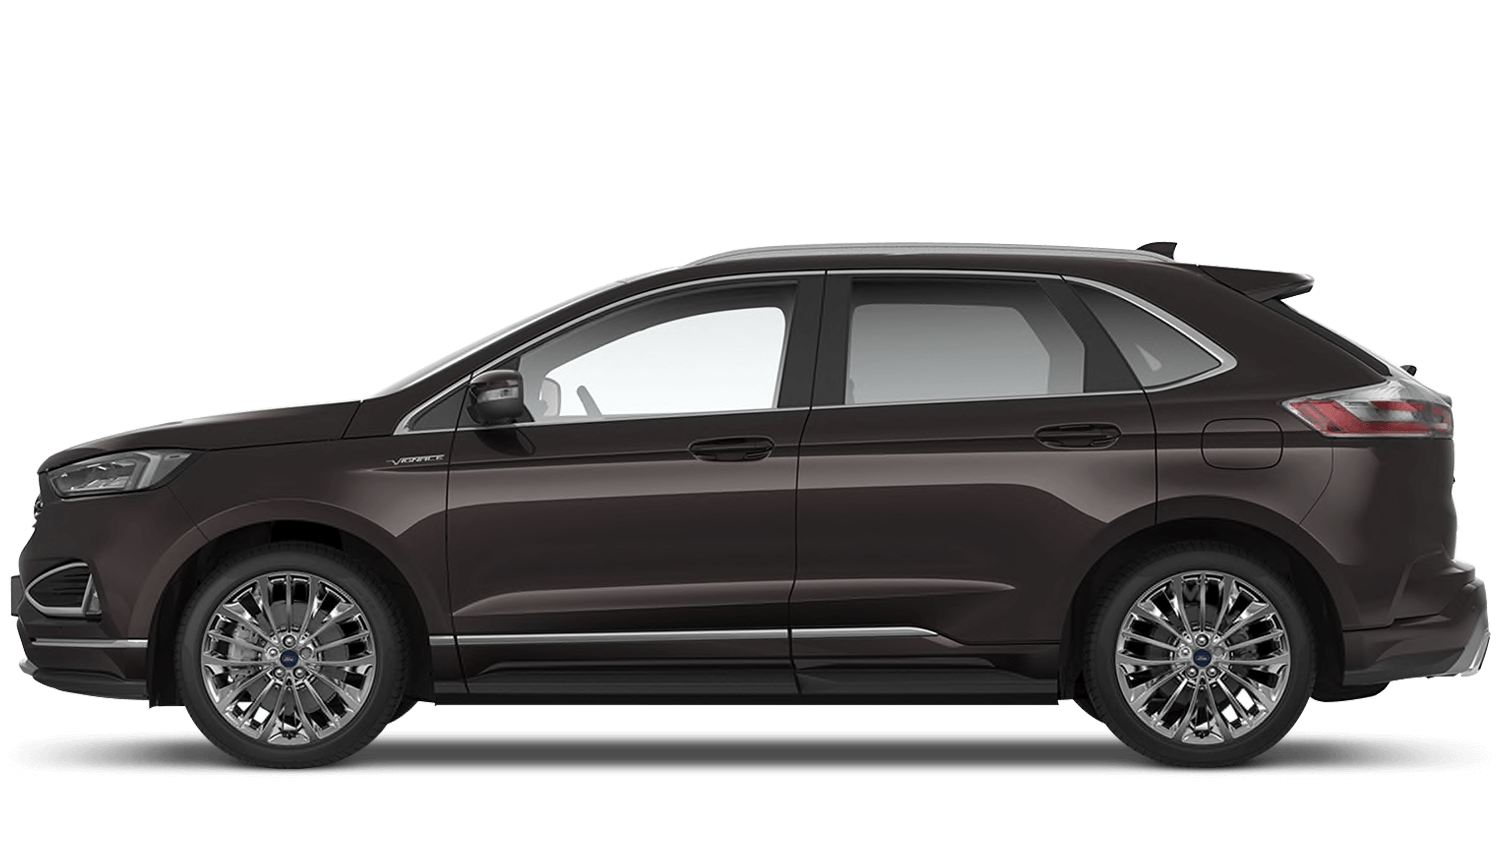 Ametista Scura (Exclusive) New Ford Edge